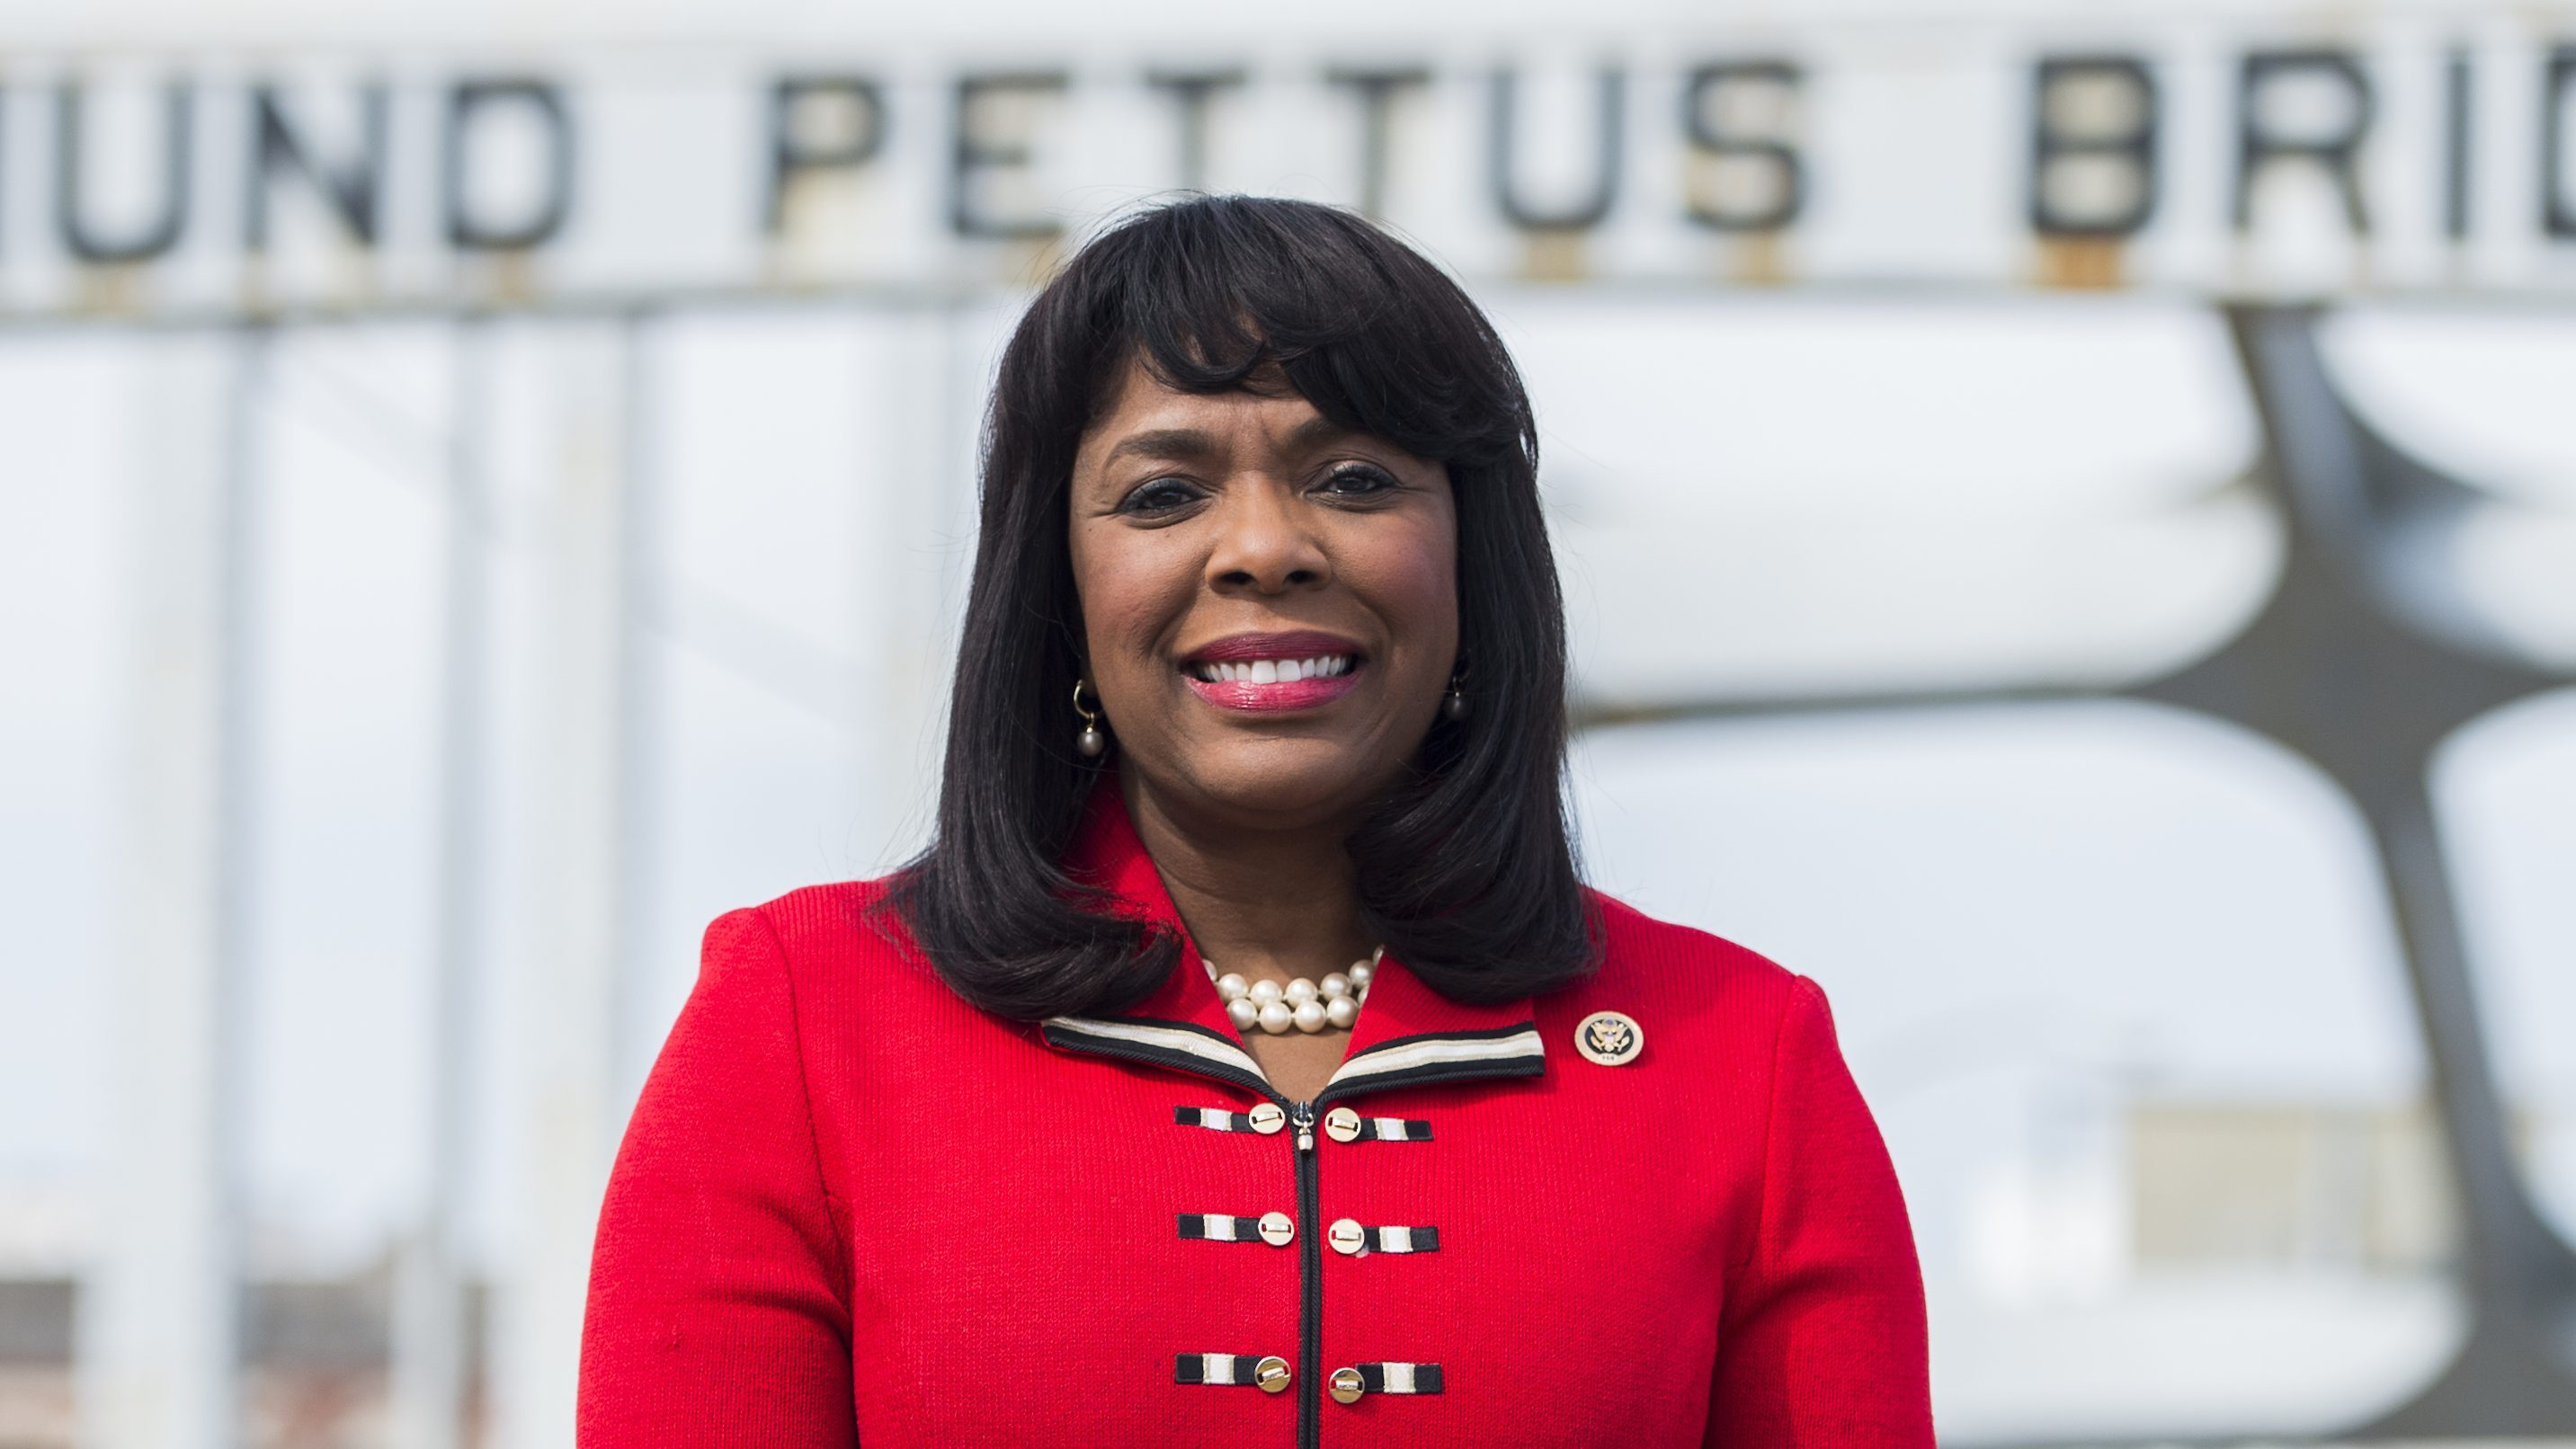 Rep. Terri Sewell, D-Alabama, poses on the Edmund Pettus Bridge in Selma, Feb. 15, 2015.